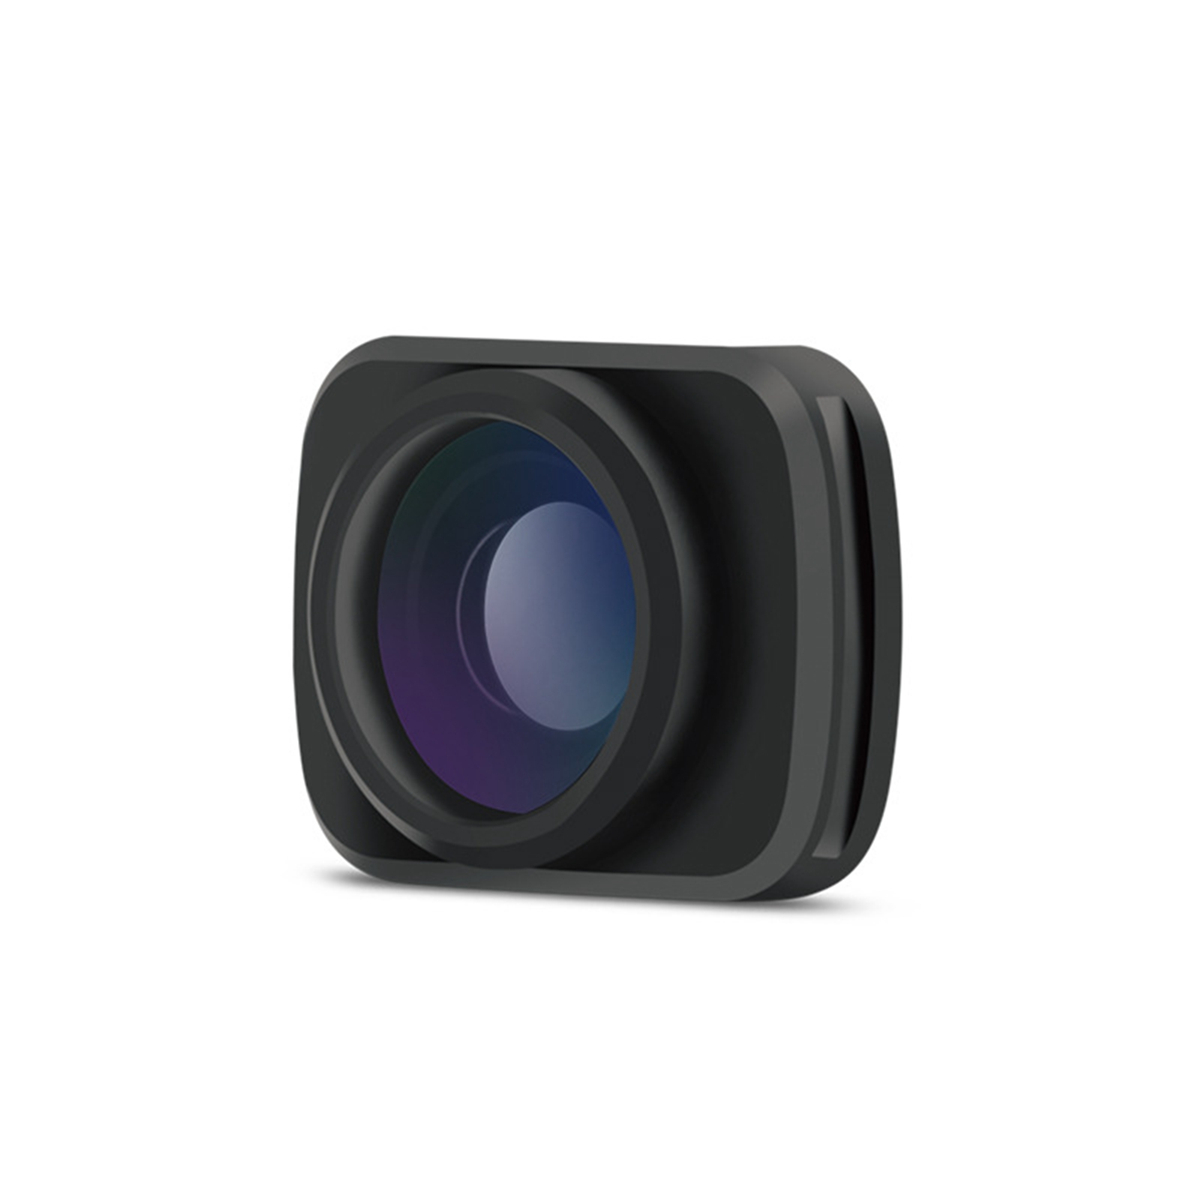 Mini Wide-angle Camera Lens Glass Coating For DJI OSMO Pocket Handheld Gimbal